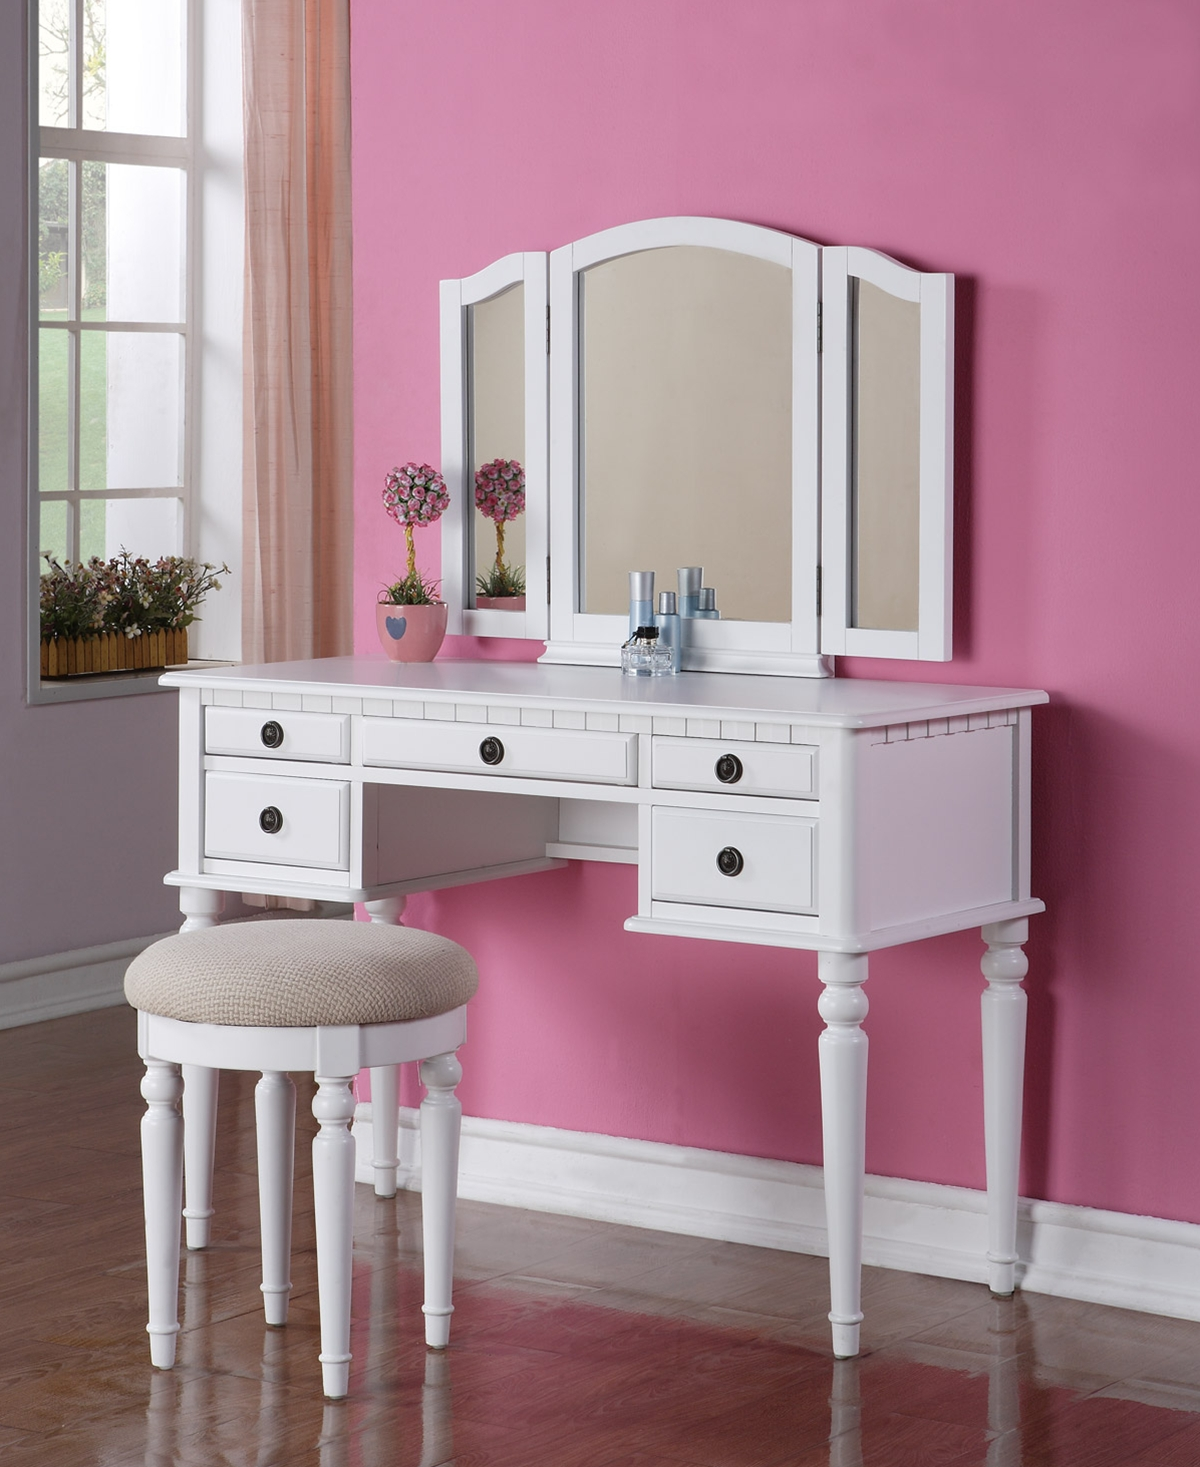 Poundex Vanity w/ Stool, White F4074 (774)by New Furniture 4 Less